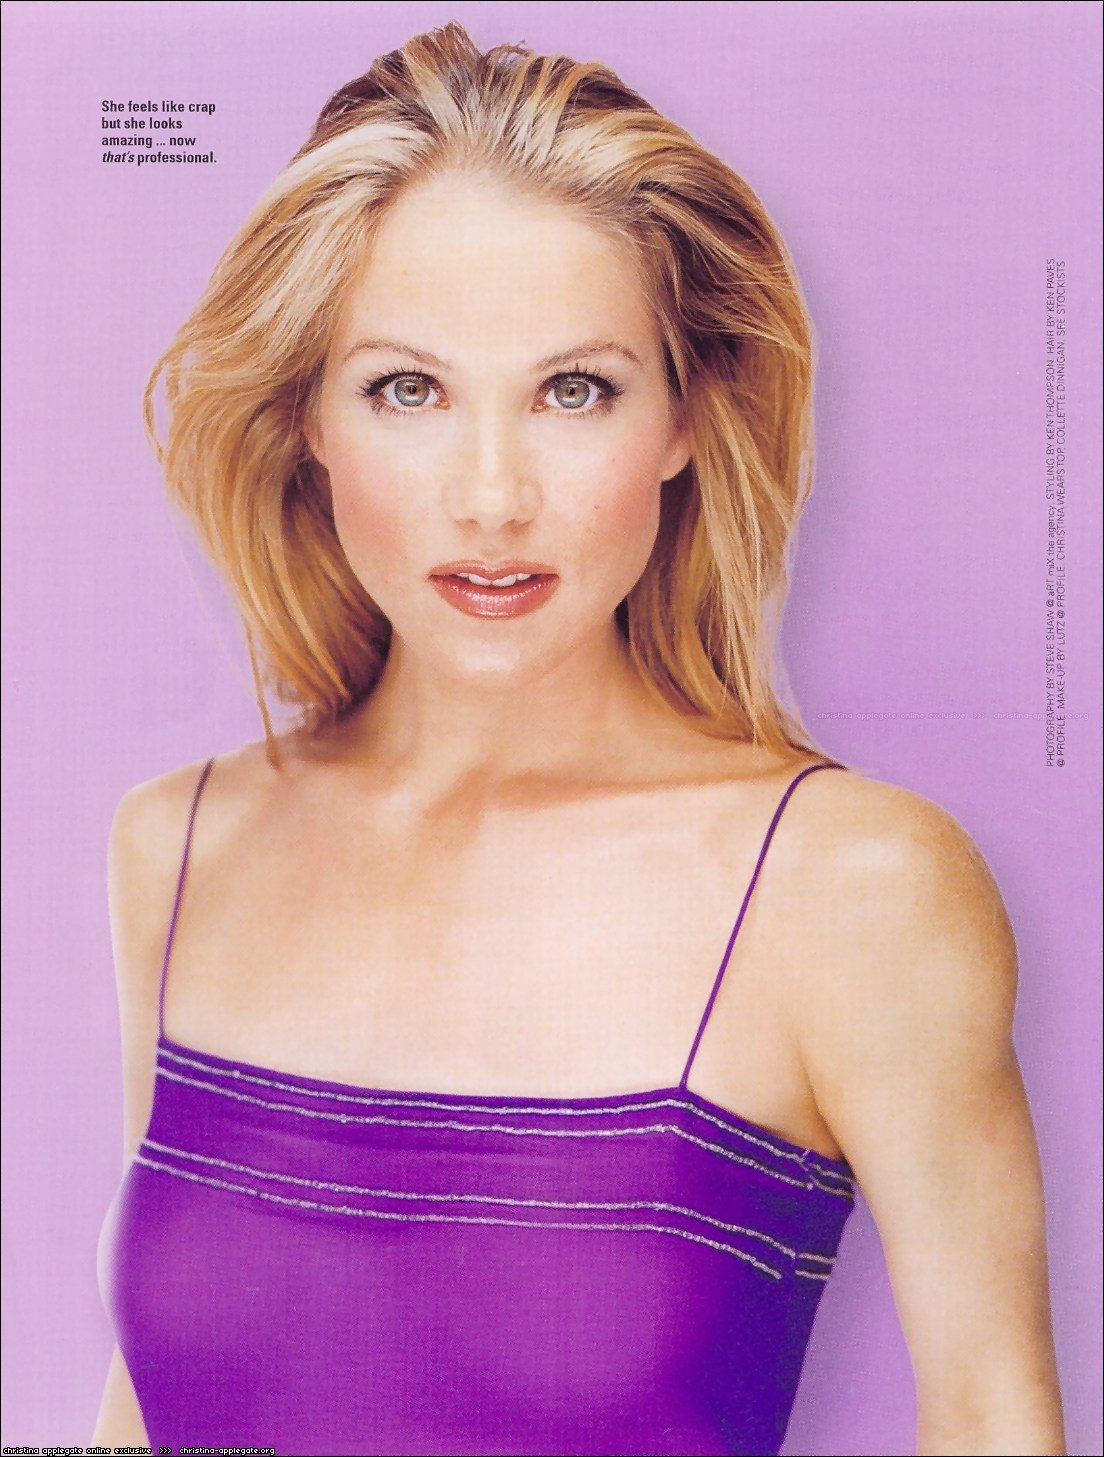 Cosmo - christina-applegate